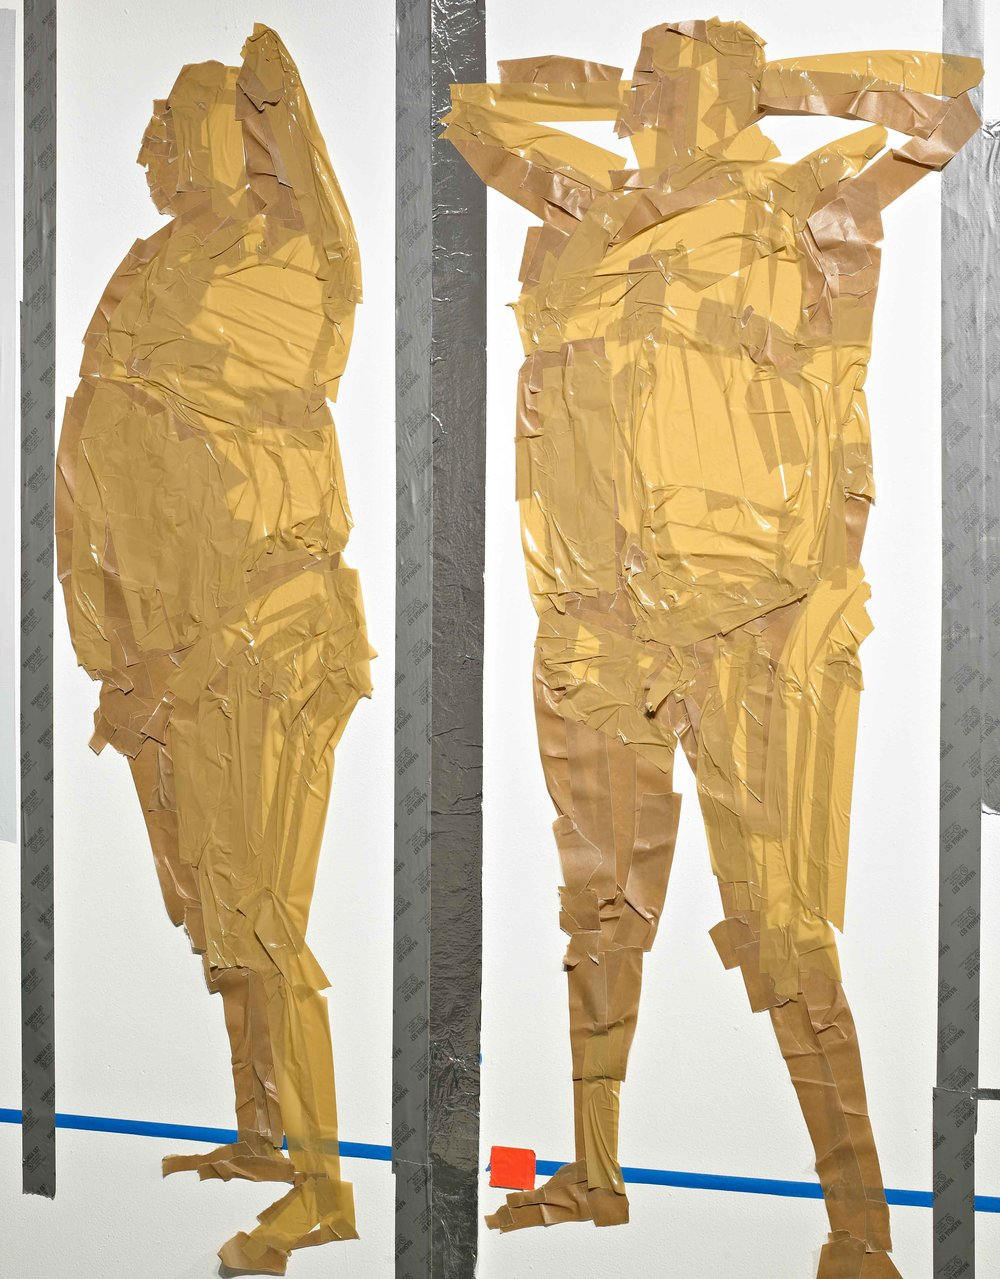 Airport In Security (detail), 8'x44', duct tape on wall, 2012